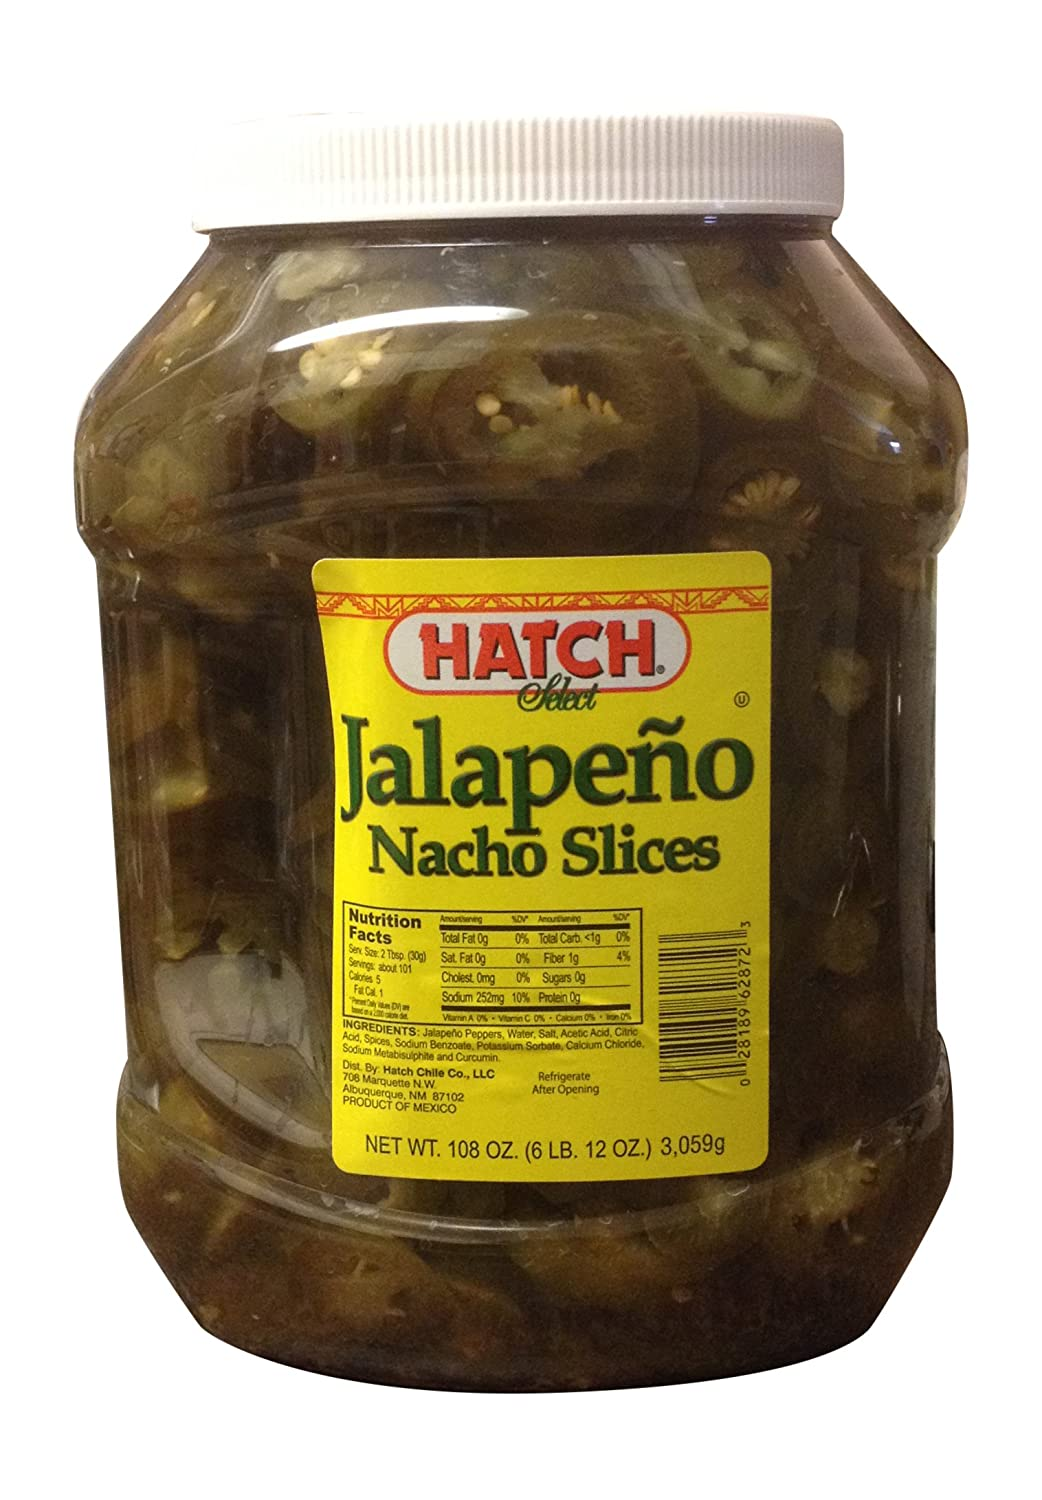 Hatch Select Jalapeno Nacho Slices 108 OZ (6 LB. 12 OZ.)